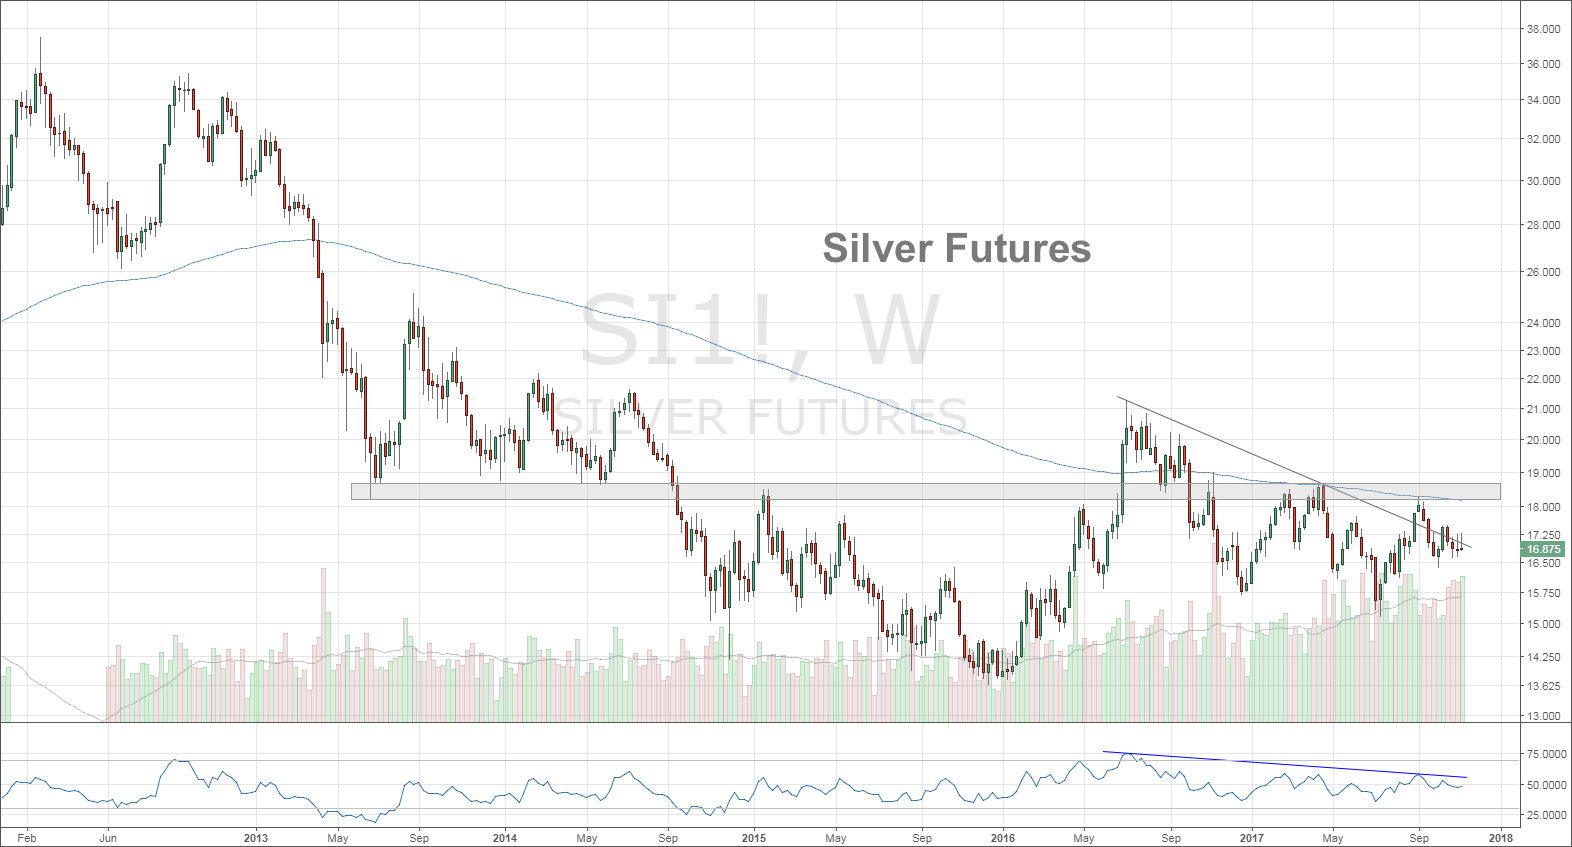 silver futures prices bearish down trend lower_news_investing_november 14